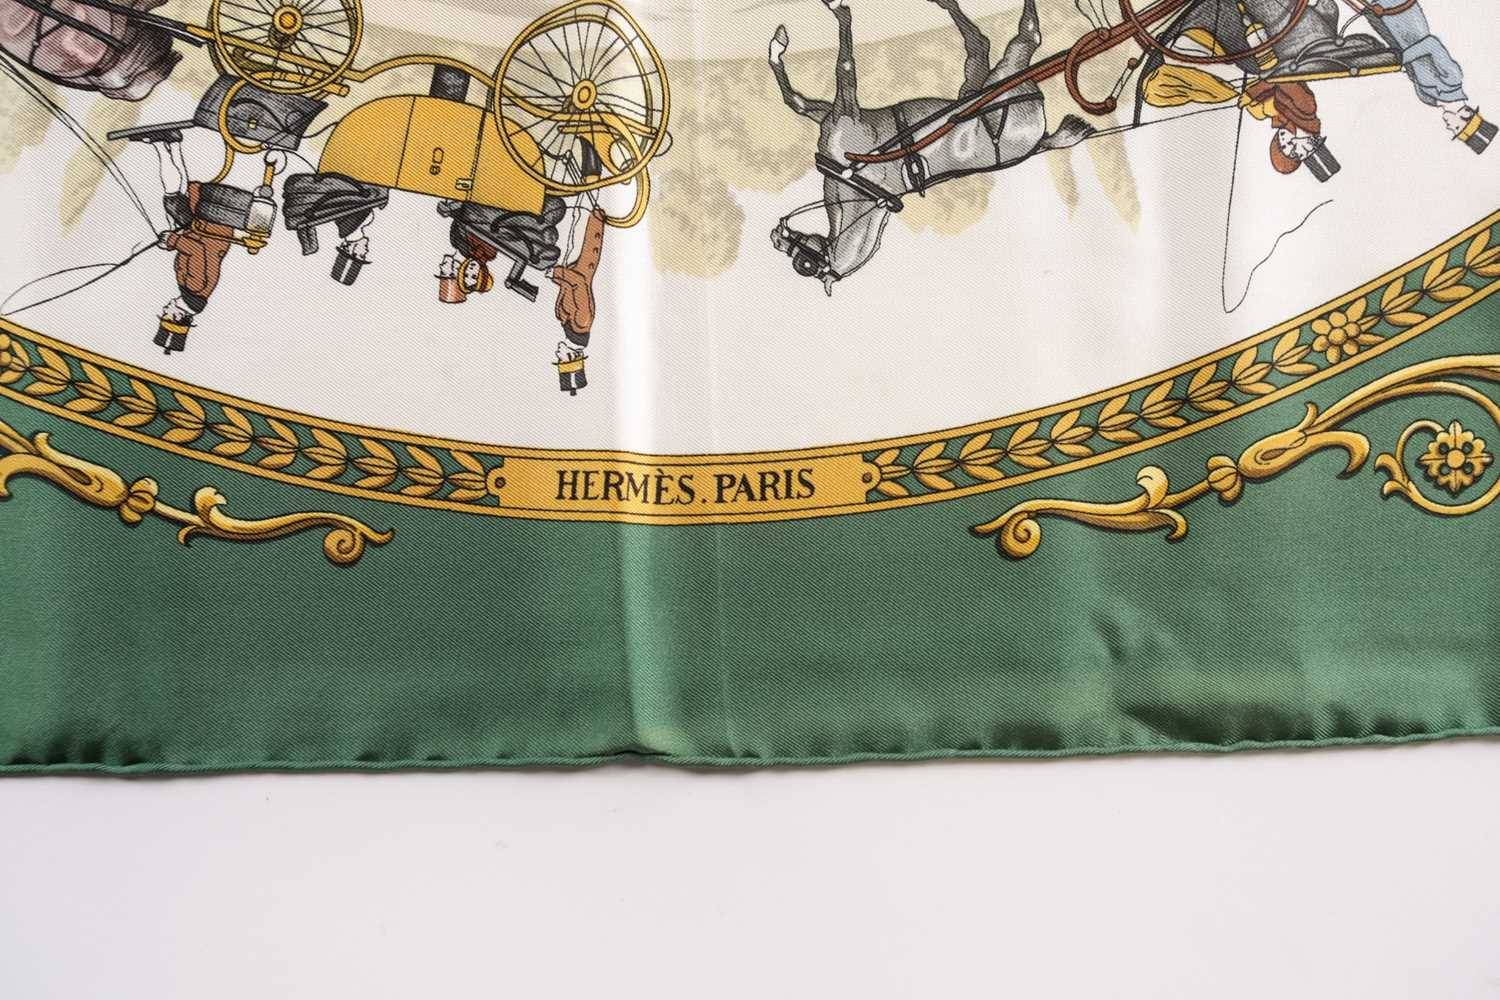 A Hermes silk square scarf printed with La Promenade De Longchamps pattern in yellow and tones of - Image 5 of 8